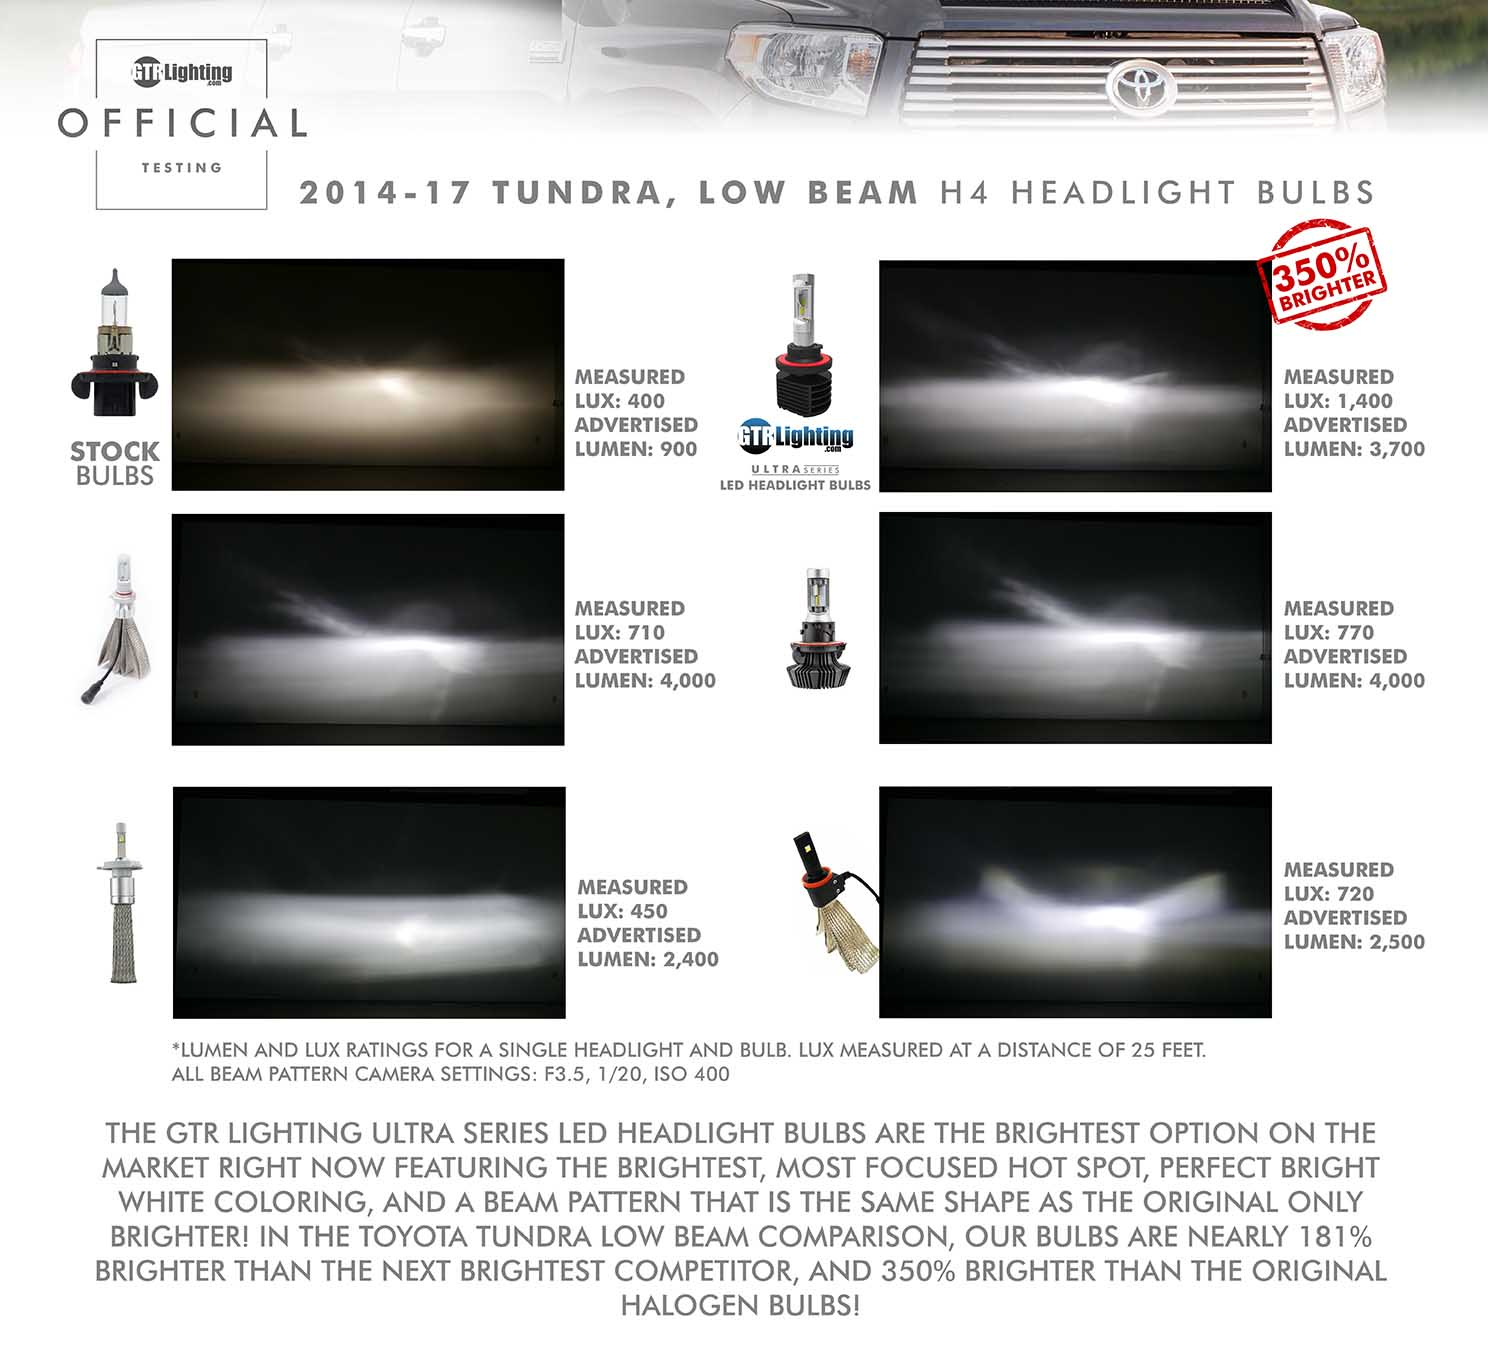 2014 2017 toyota tundra ultra series headlight bulbs upgrade tundra low beam nvjuhfo Image collections